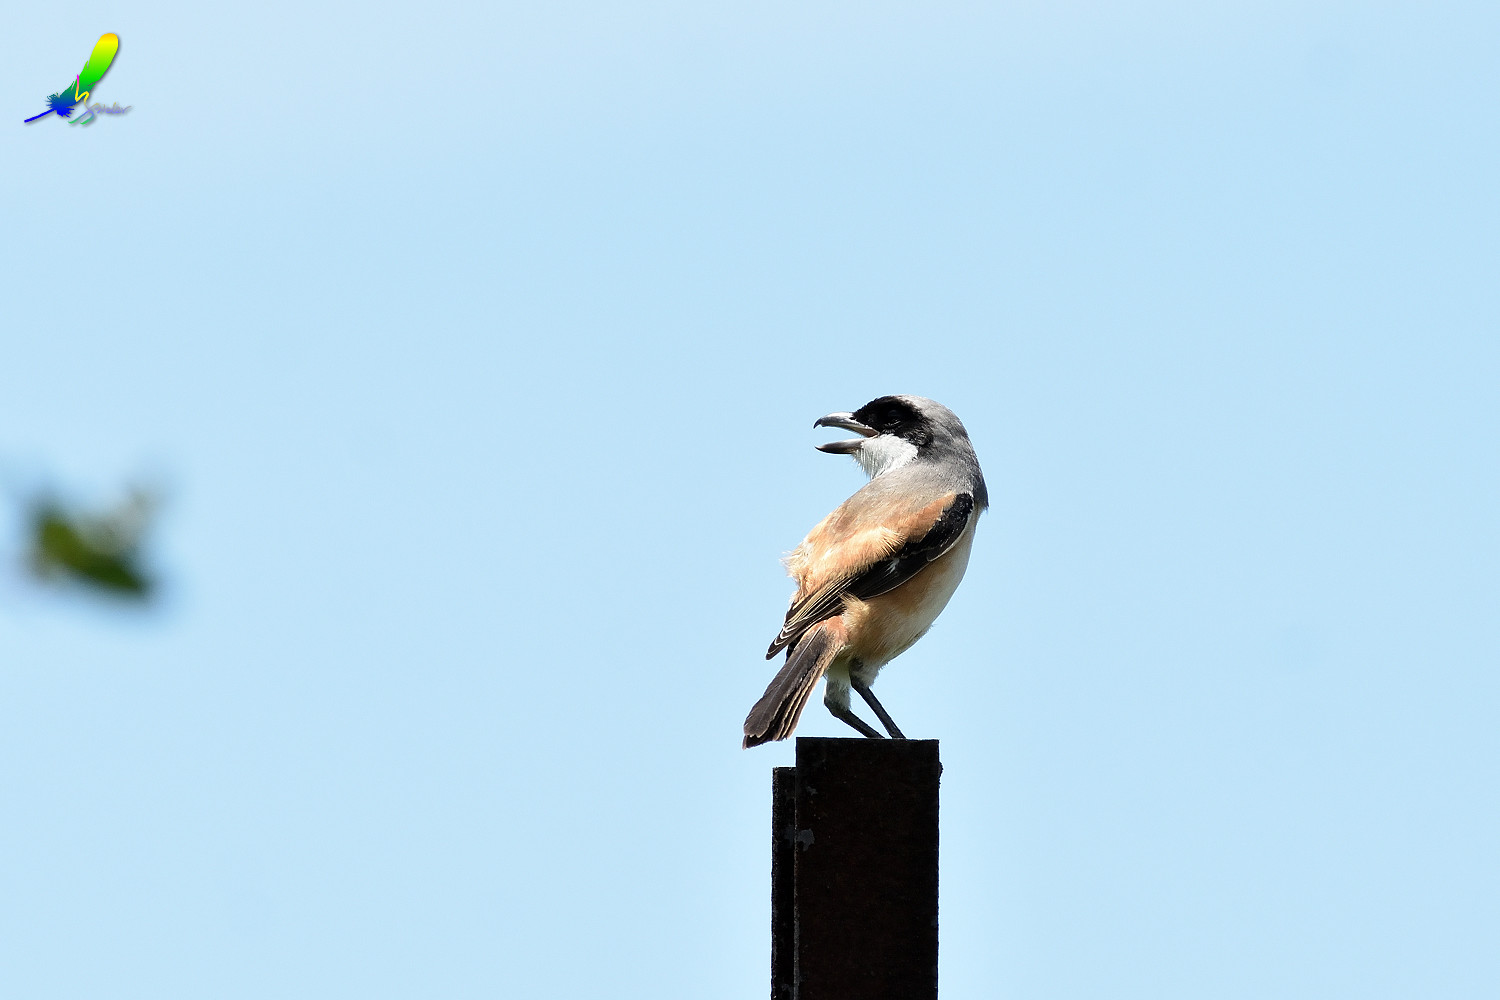 Long-tailed_Shrike_8498